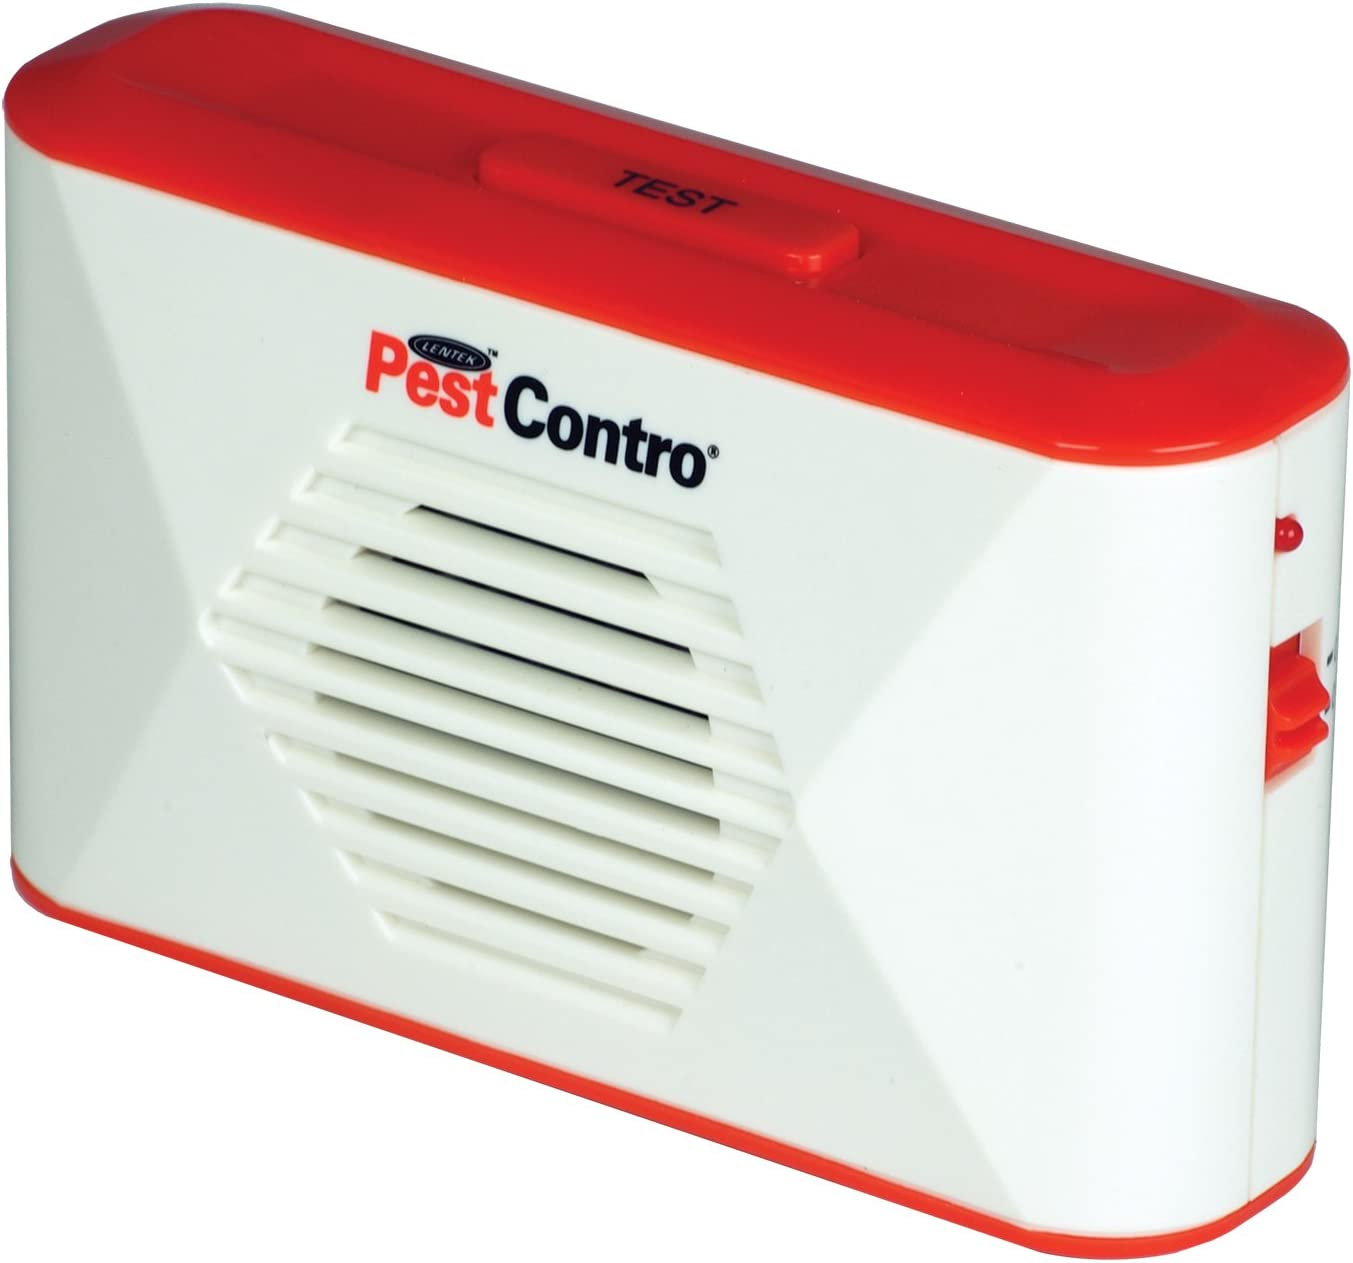 Pest Contro PR23 Battery Operated Repeller : Garden & Outdoor